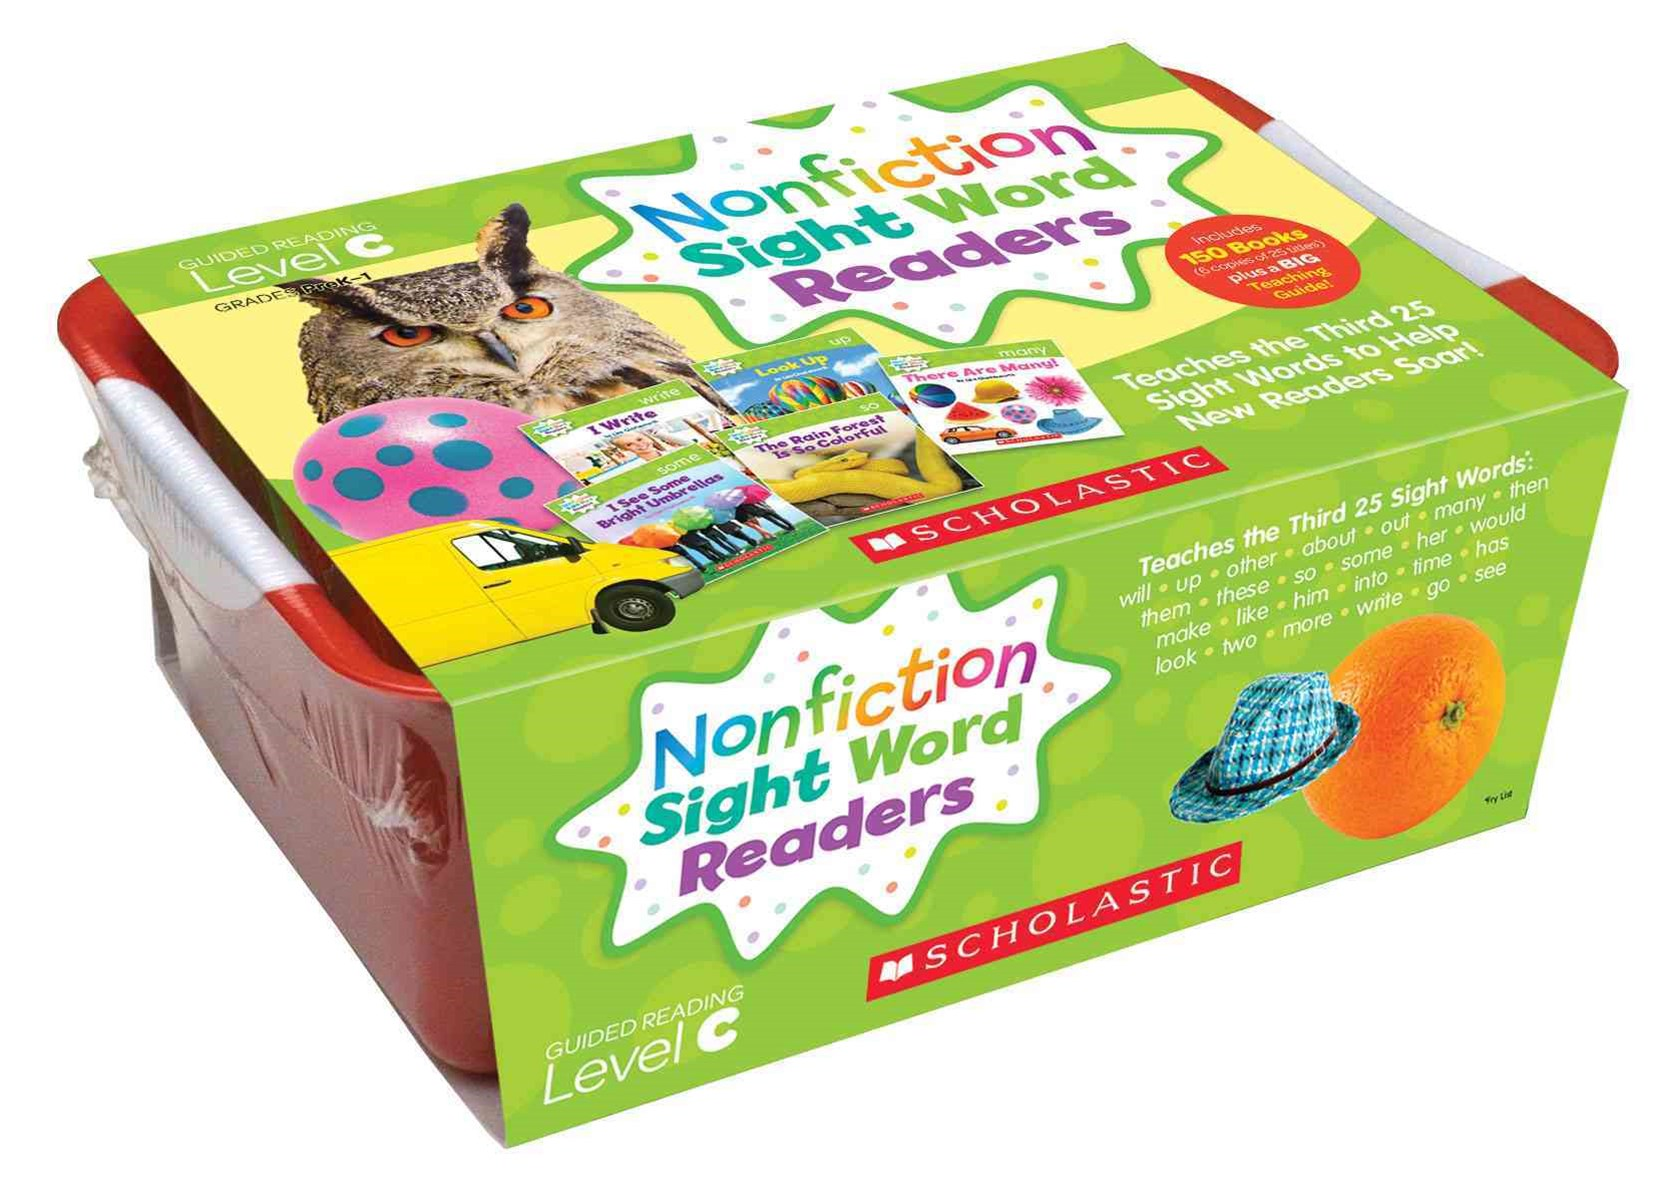 Nonfiction Sight Word Readers Classroom Tub 3